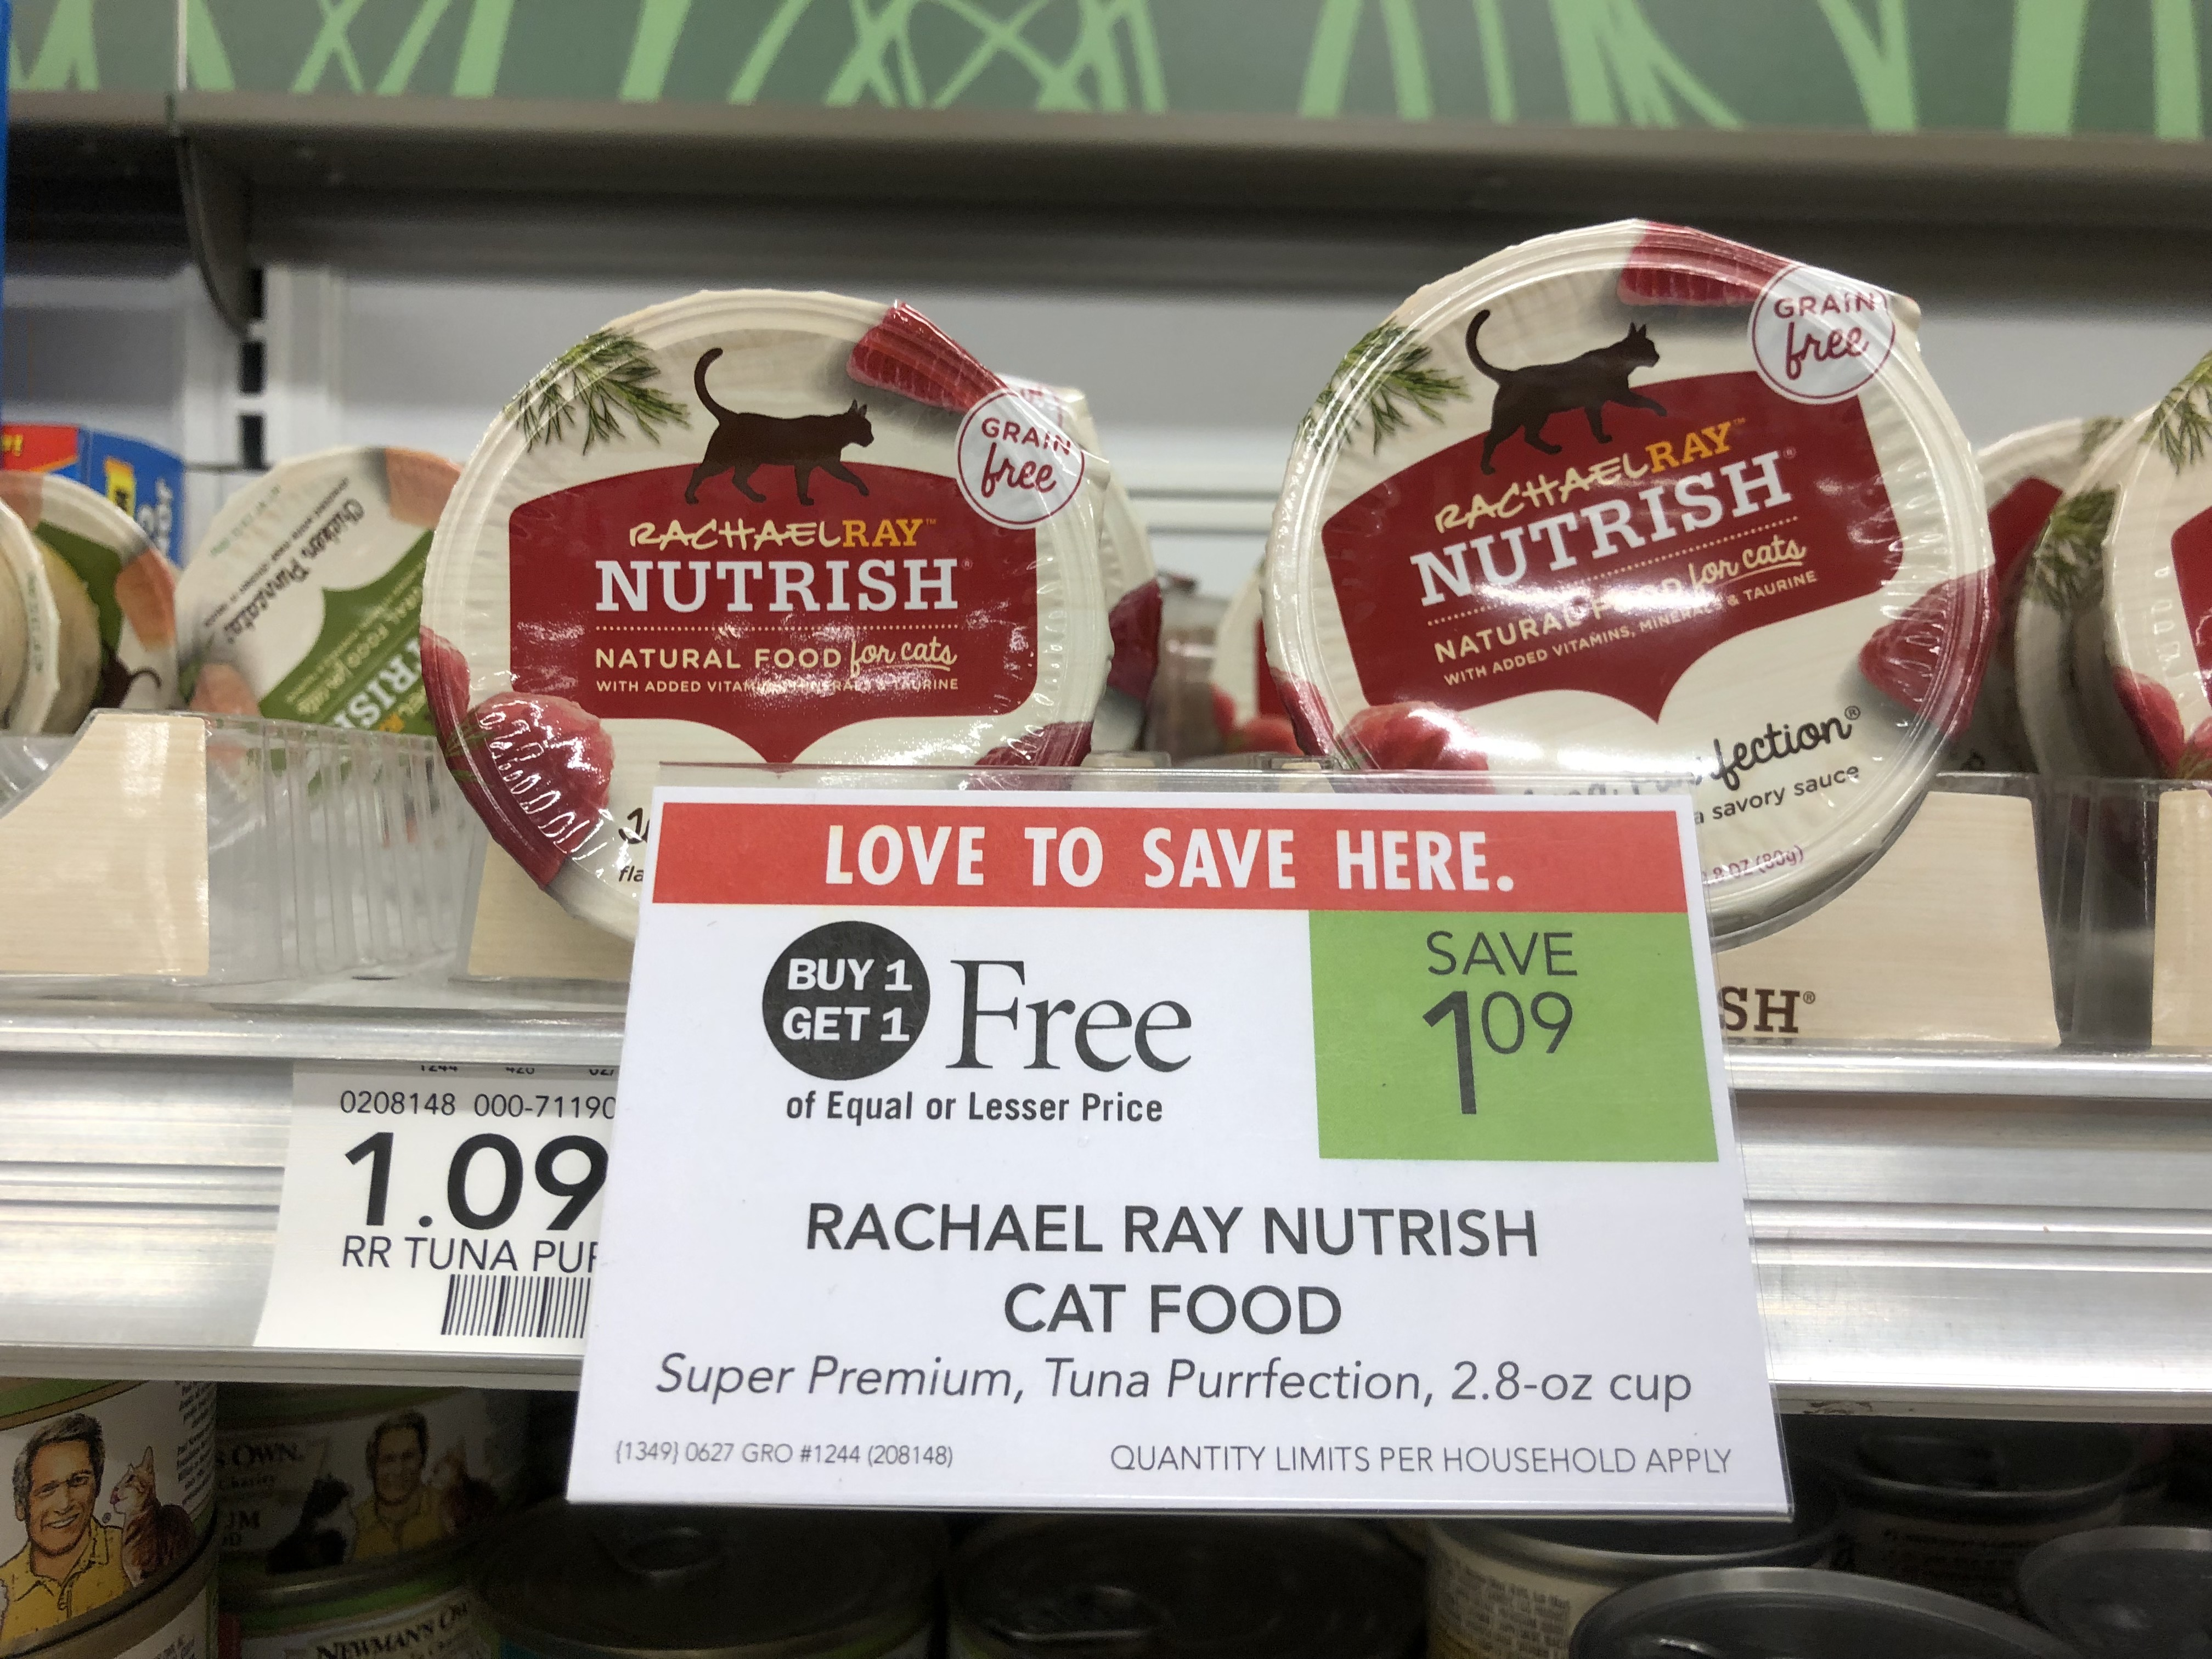 Rachael Ray Nutrish Wet Cat Food Only 27¢ At Publix on I Heart Publix